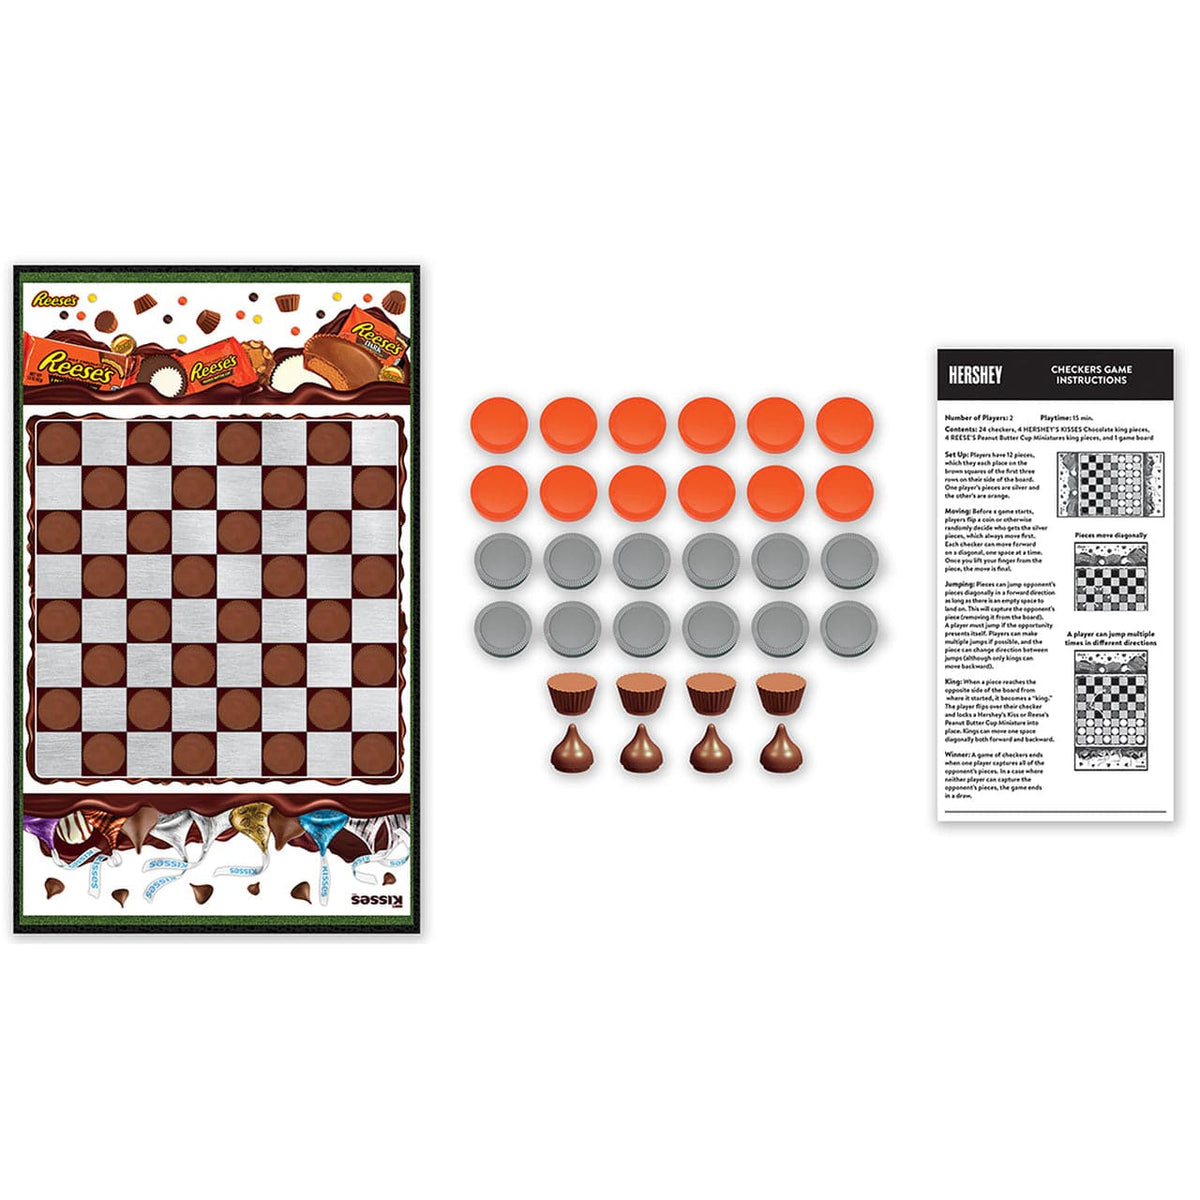 Hershey Checkers Board Game